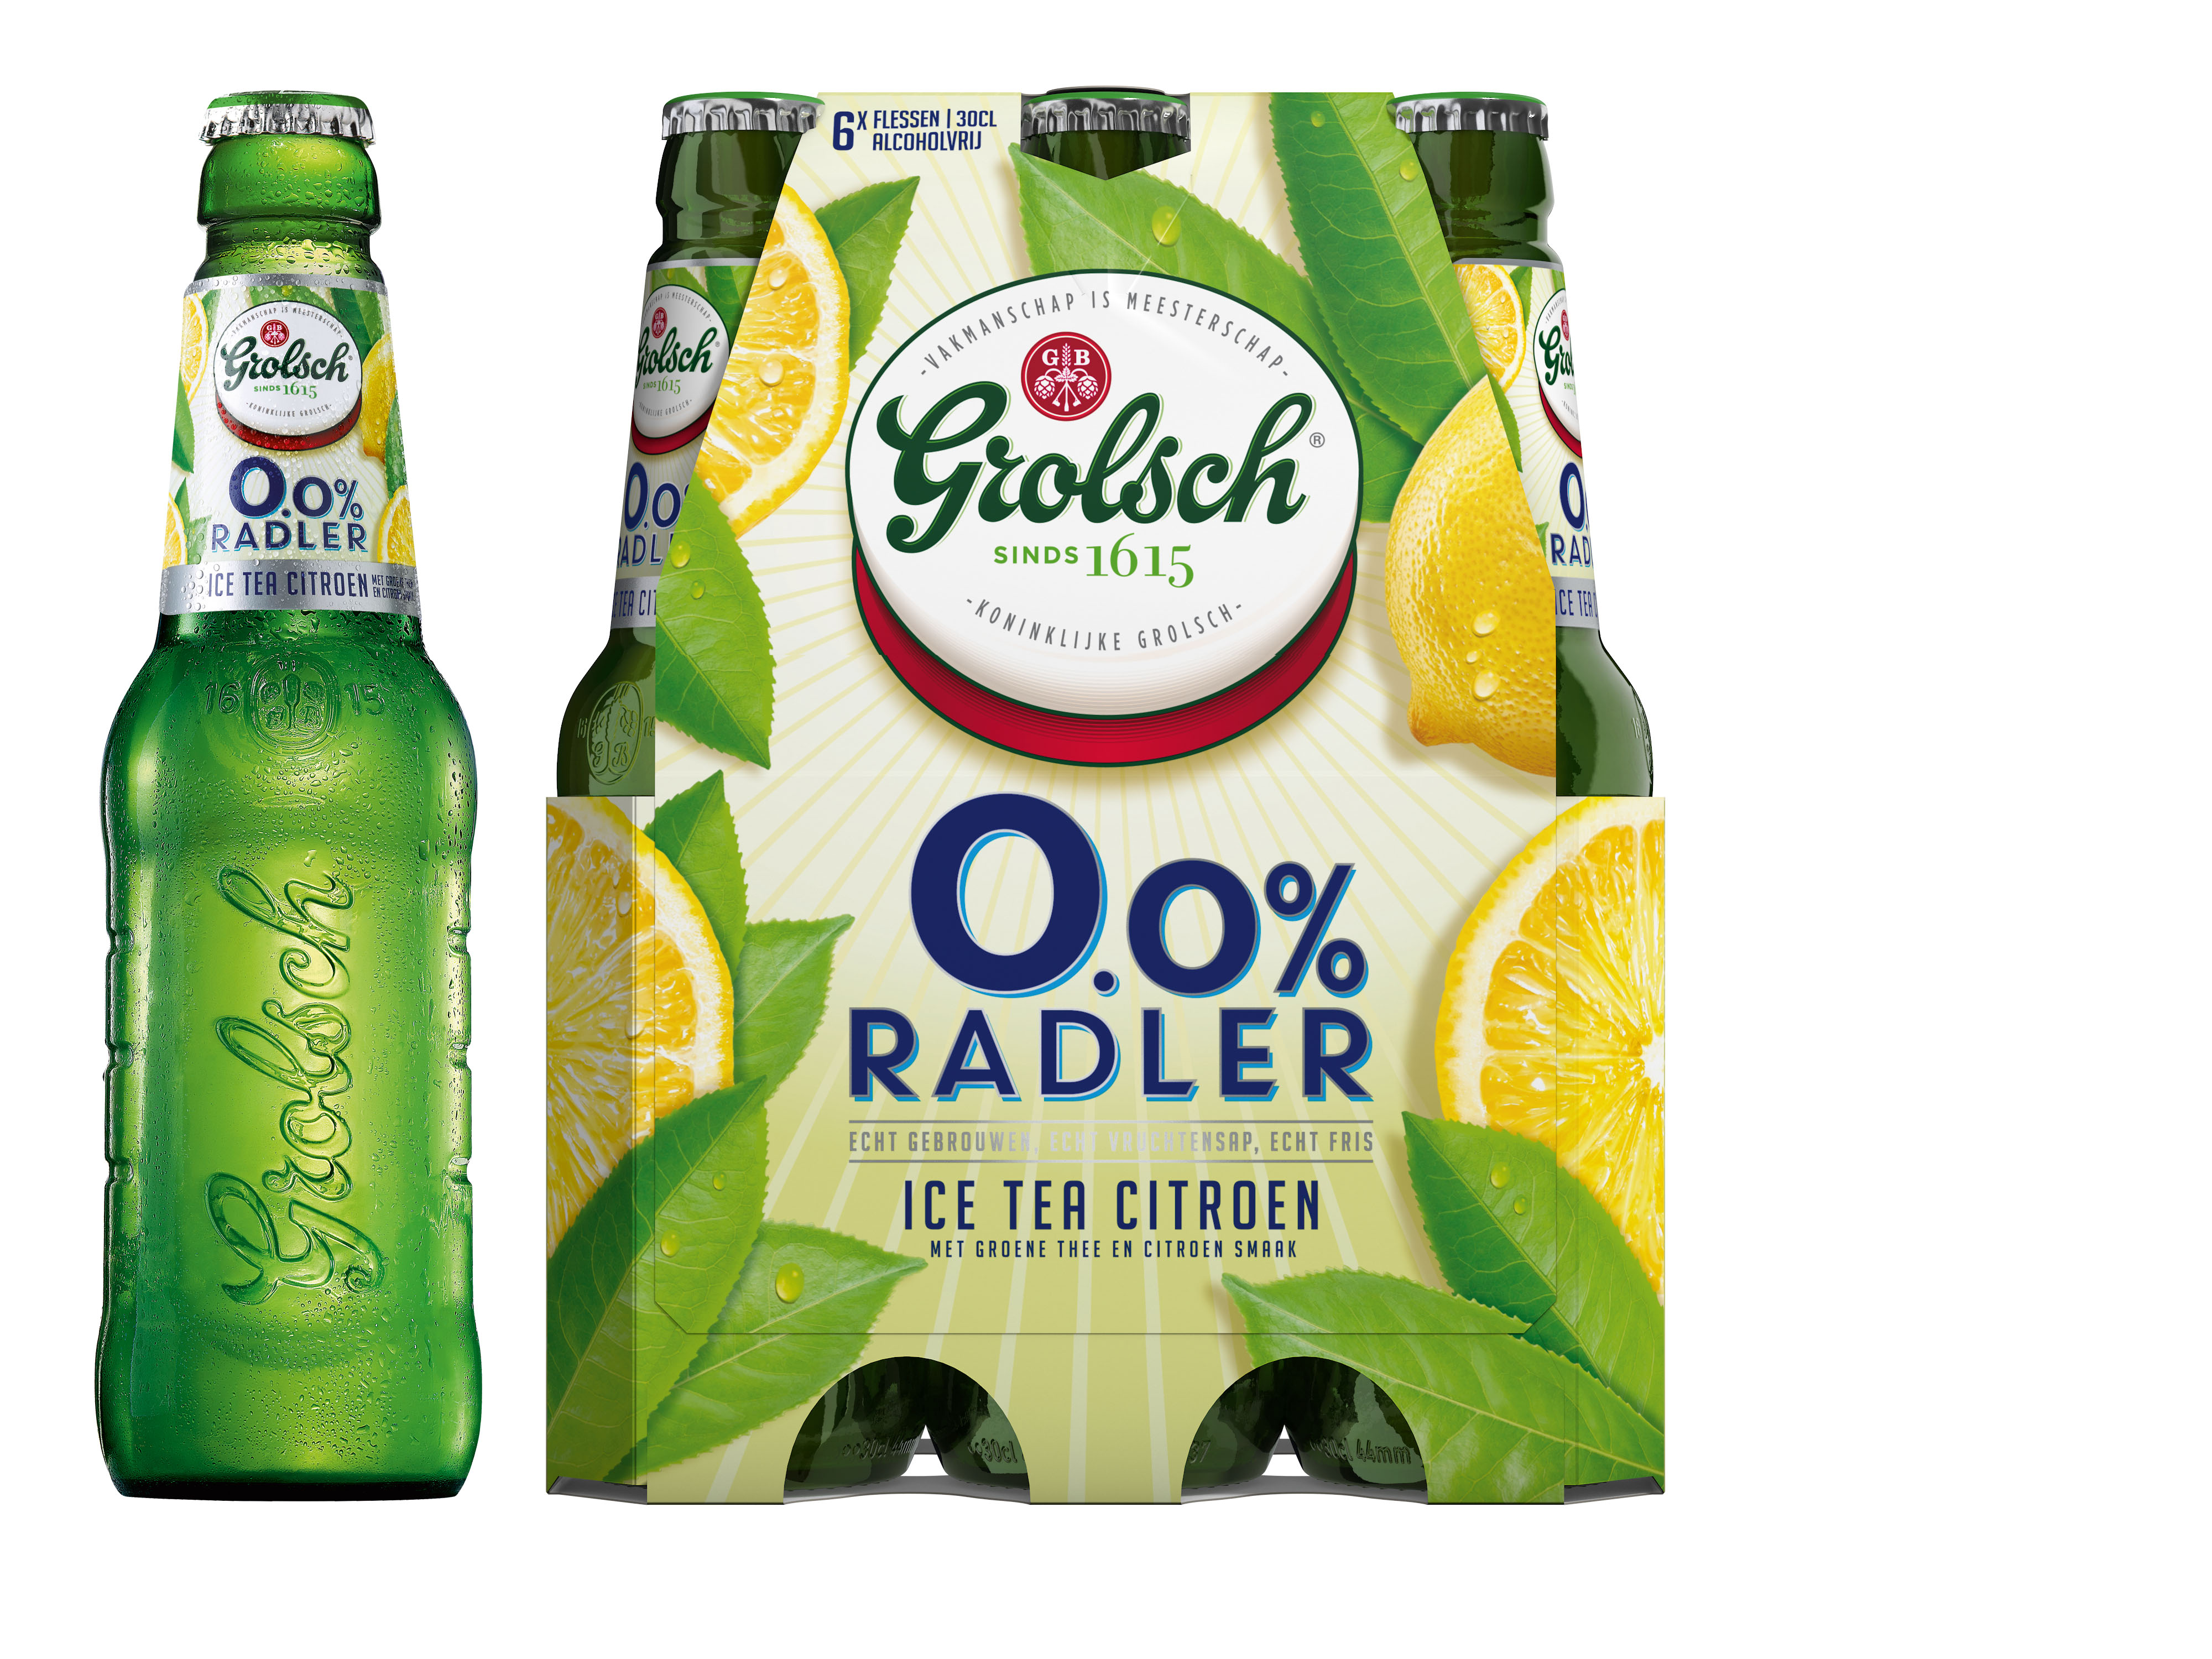 0.0% Radler Ice Tea Citroen